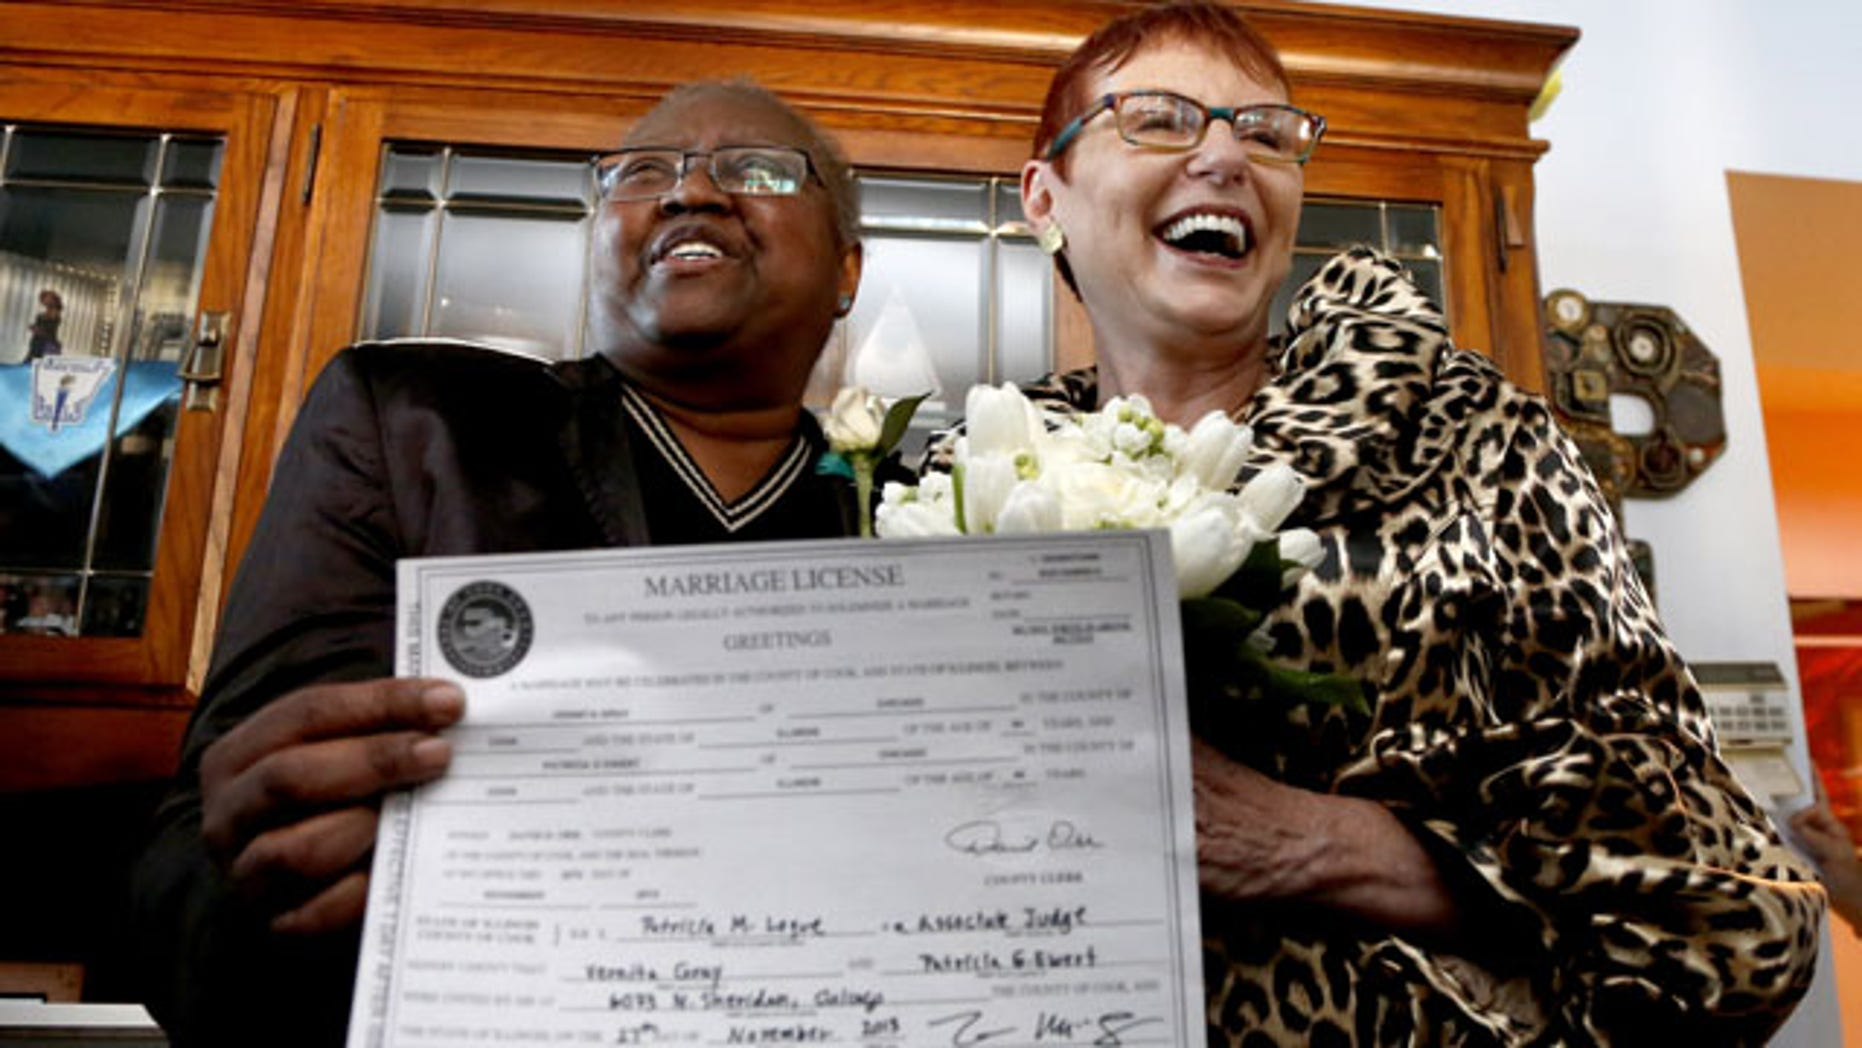 Same sex marriage in illinois